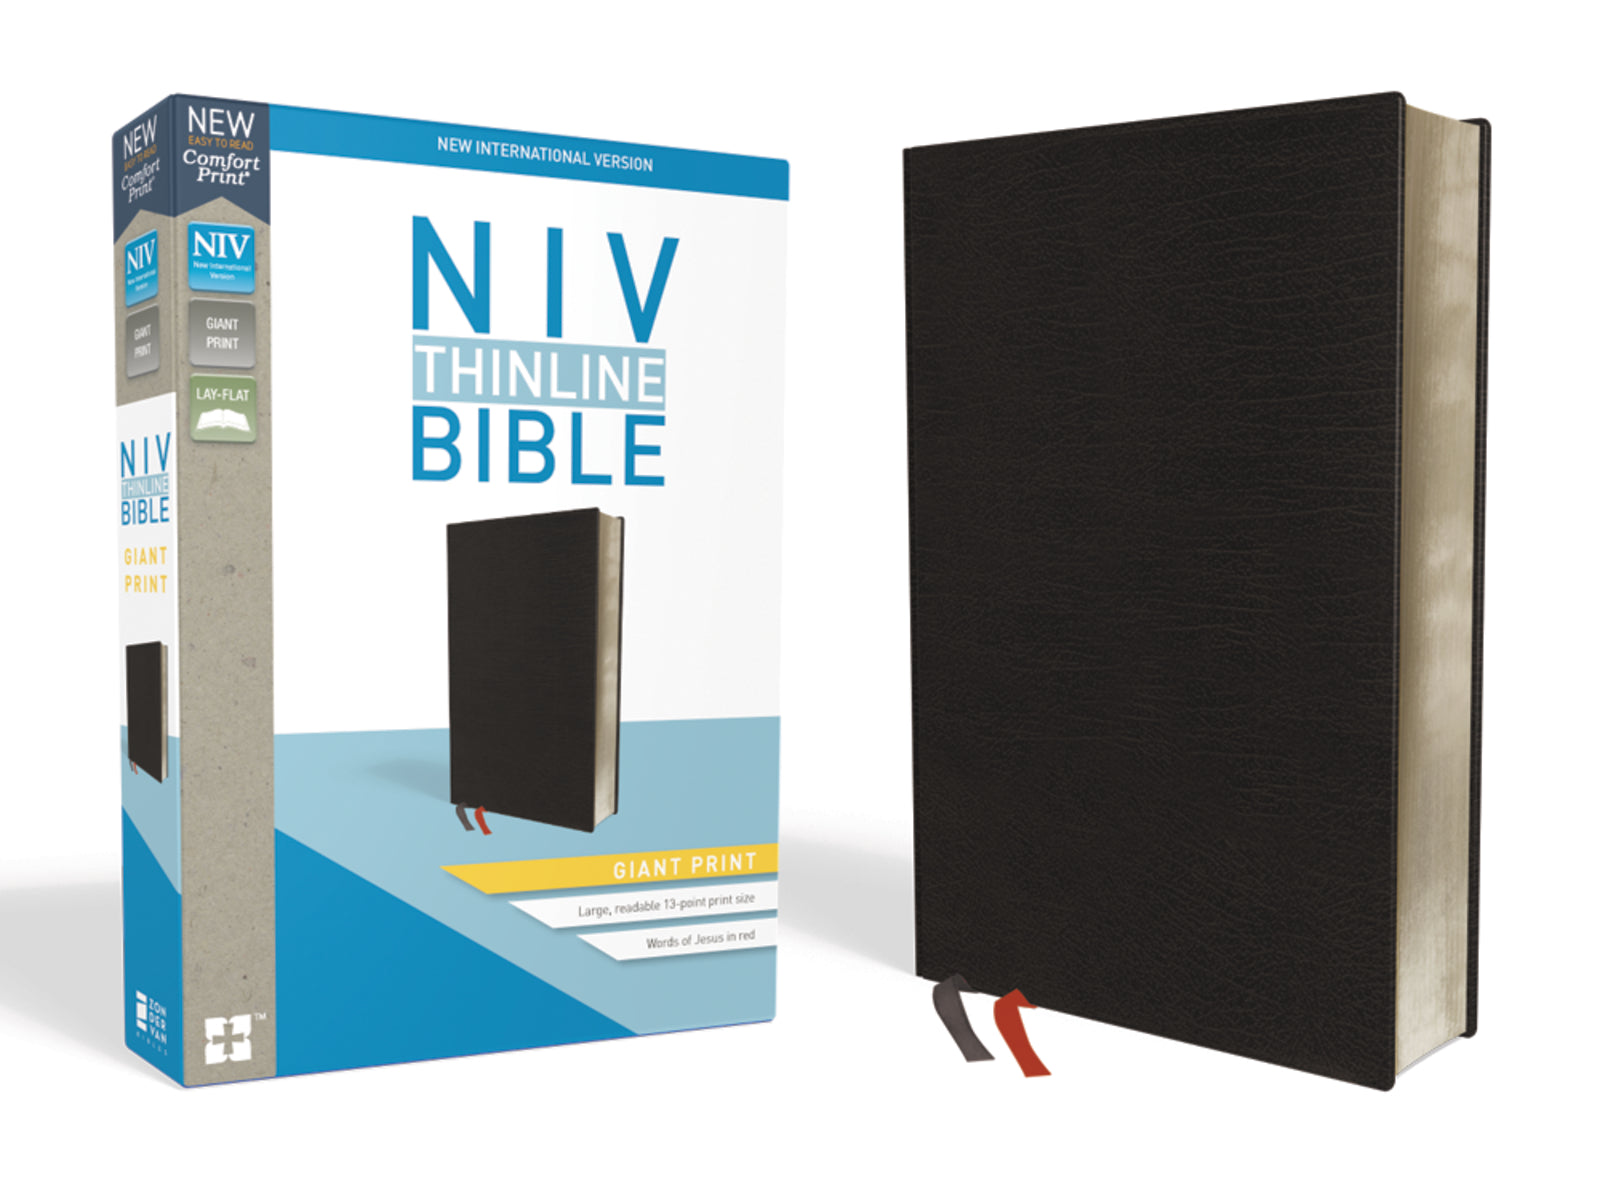 NIV-Thinline Bible Giant Print Comfort-Black